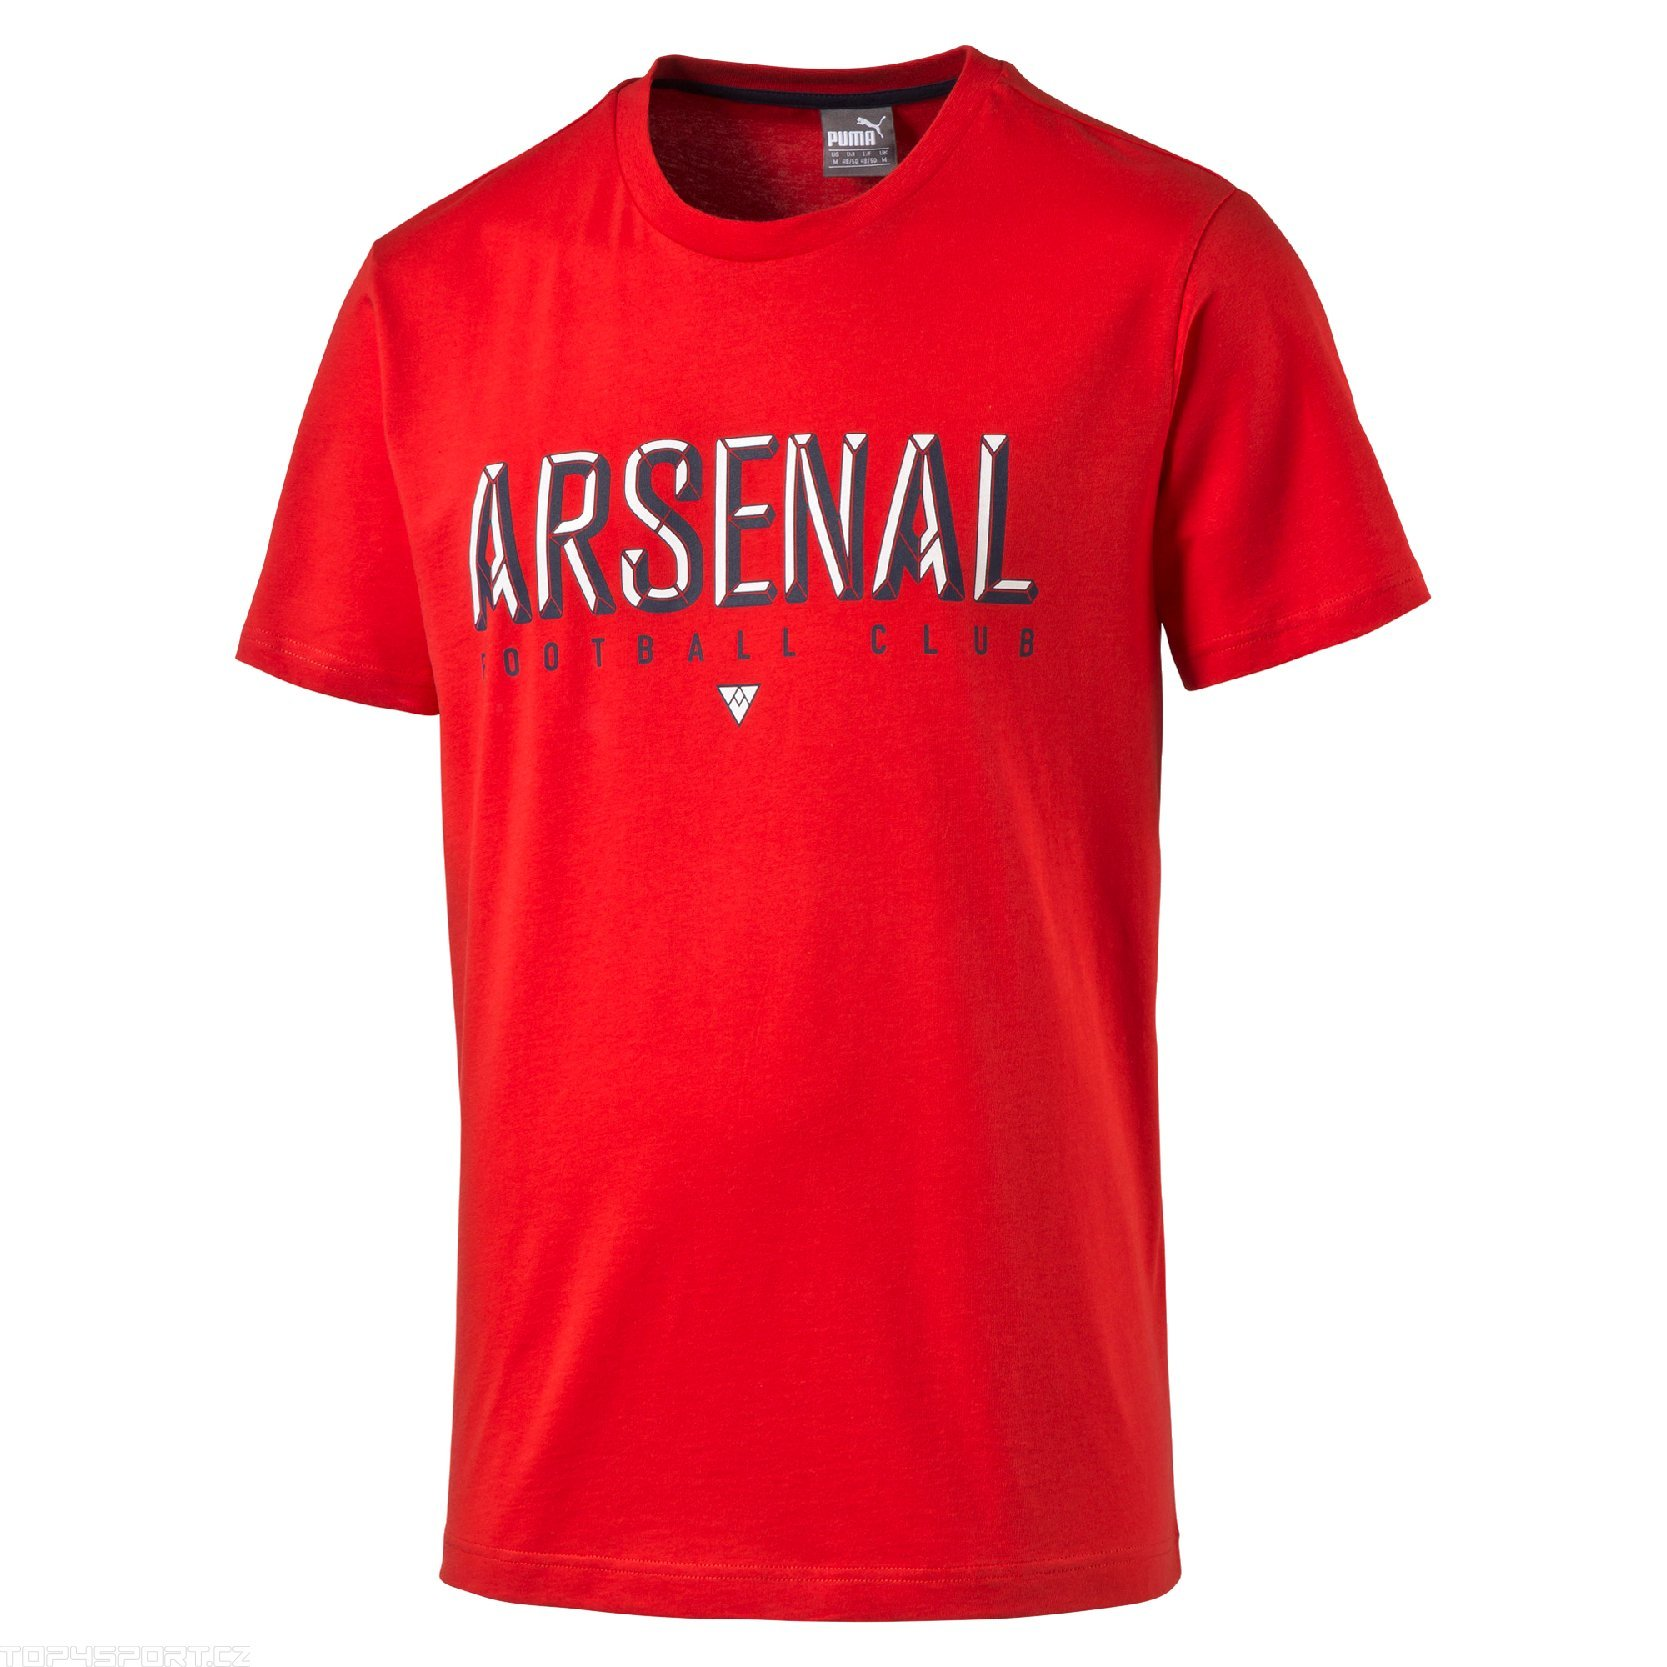 T shirt puma arsenal fan tee high risk red for Arsenal t shirts sale